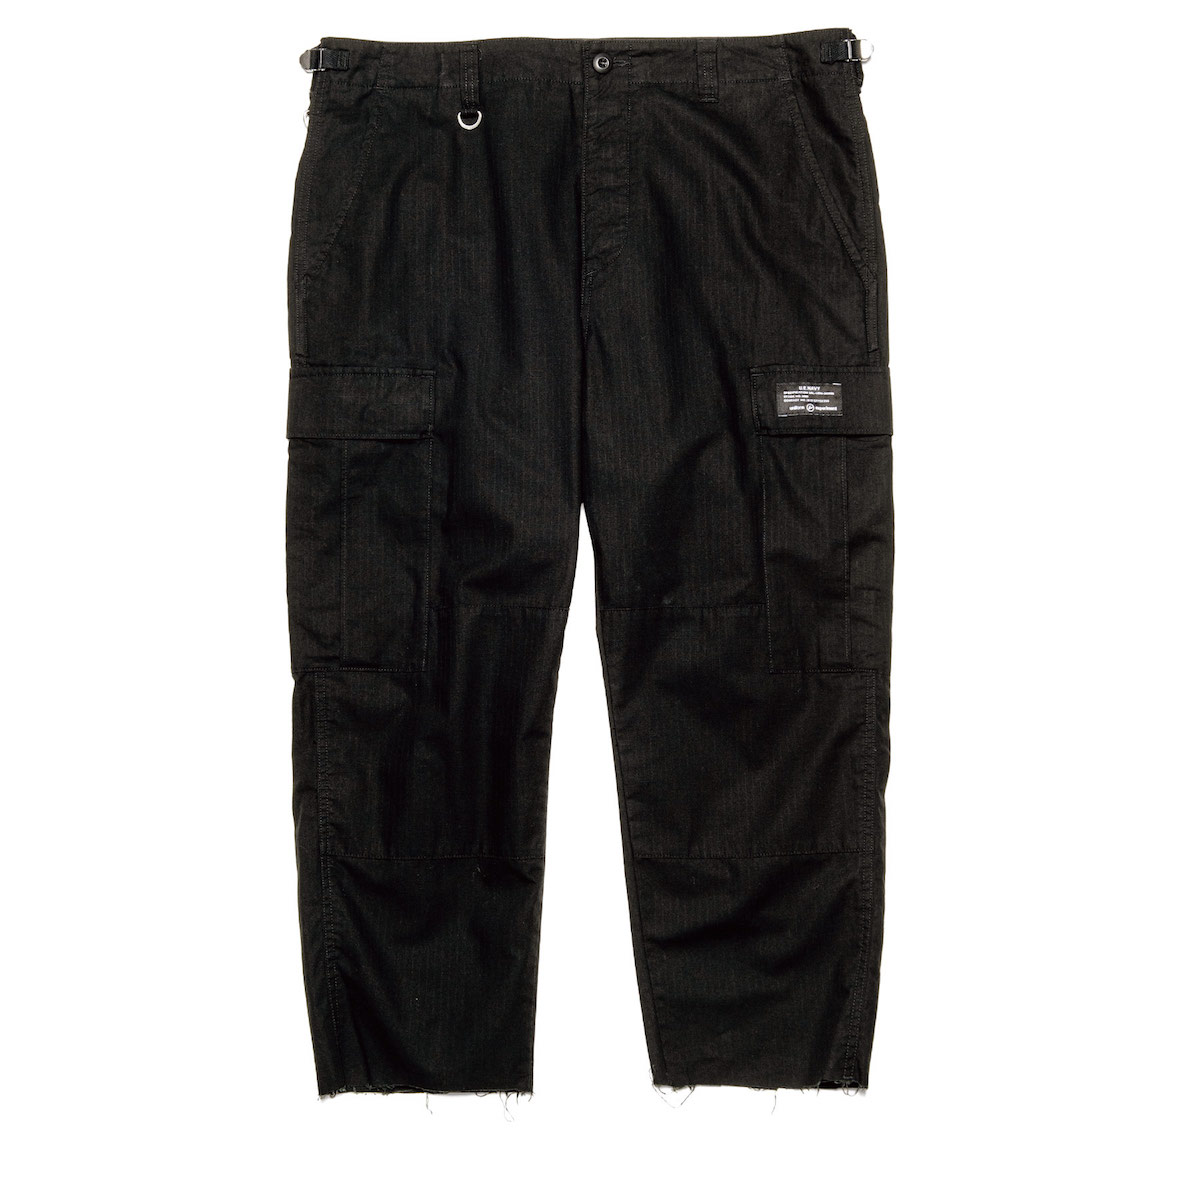 uniform experiment / HEM CUT OFF CROPPED CARGO PANTS (Black)